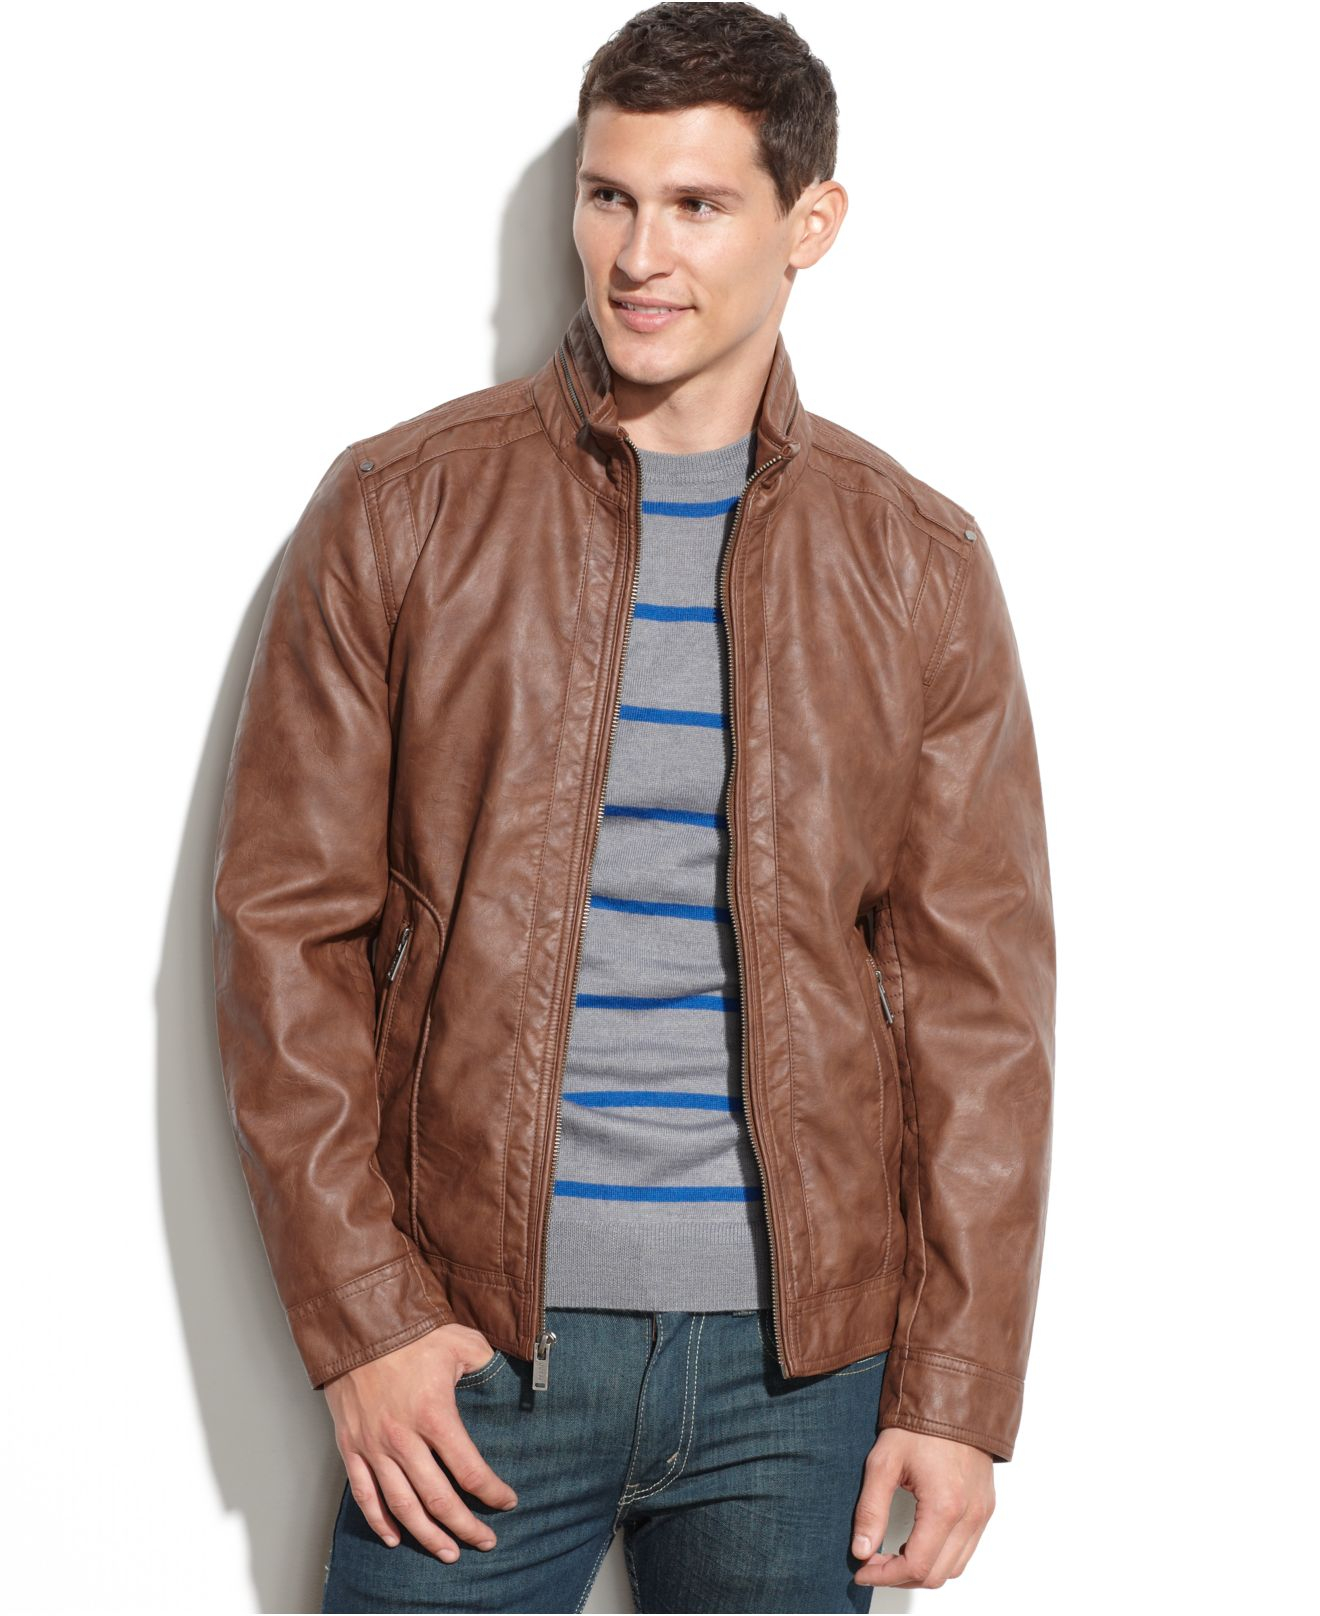 Lyst Guess Lightweight Faux Leather Moto Jacket In Brown For Men